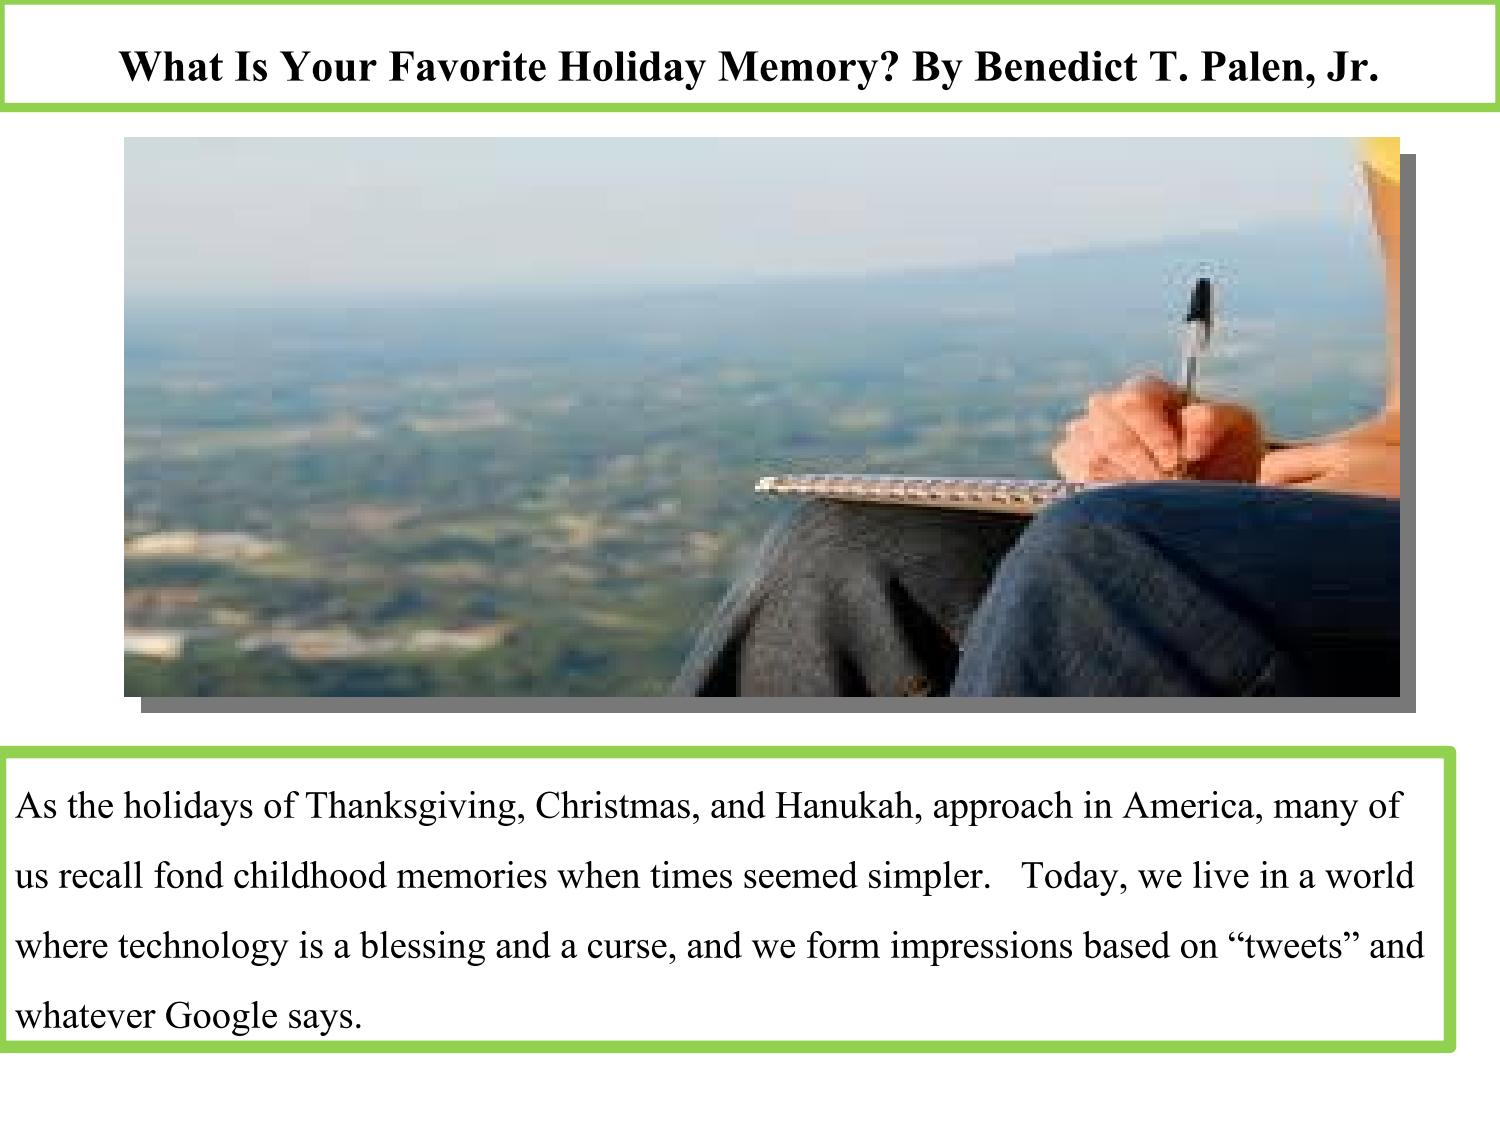 What Is Your Favorite Holiday Memory? By Benedict T. Palen, Jr. by Benedict  T. Palen, Jr - issuu